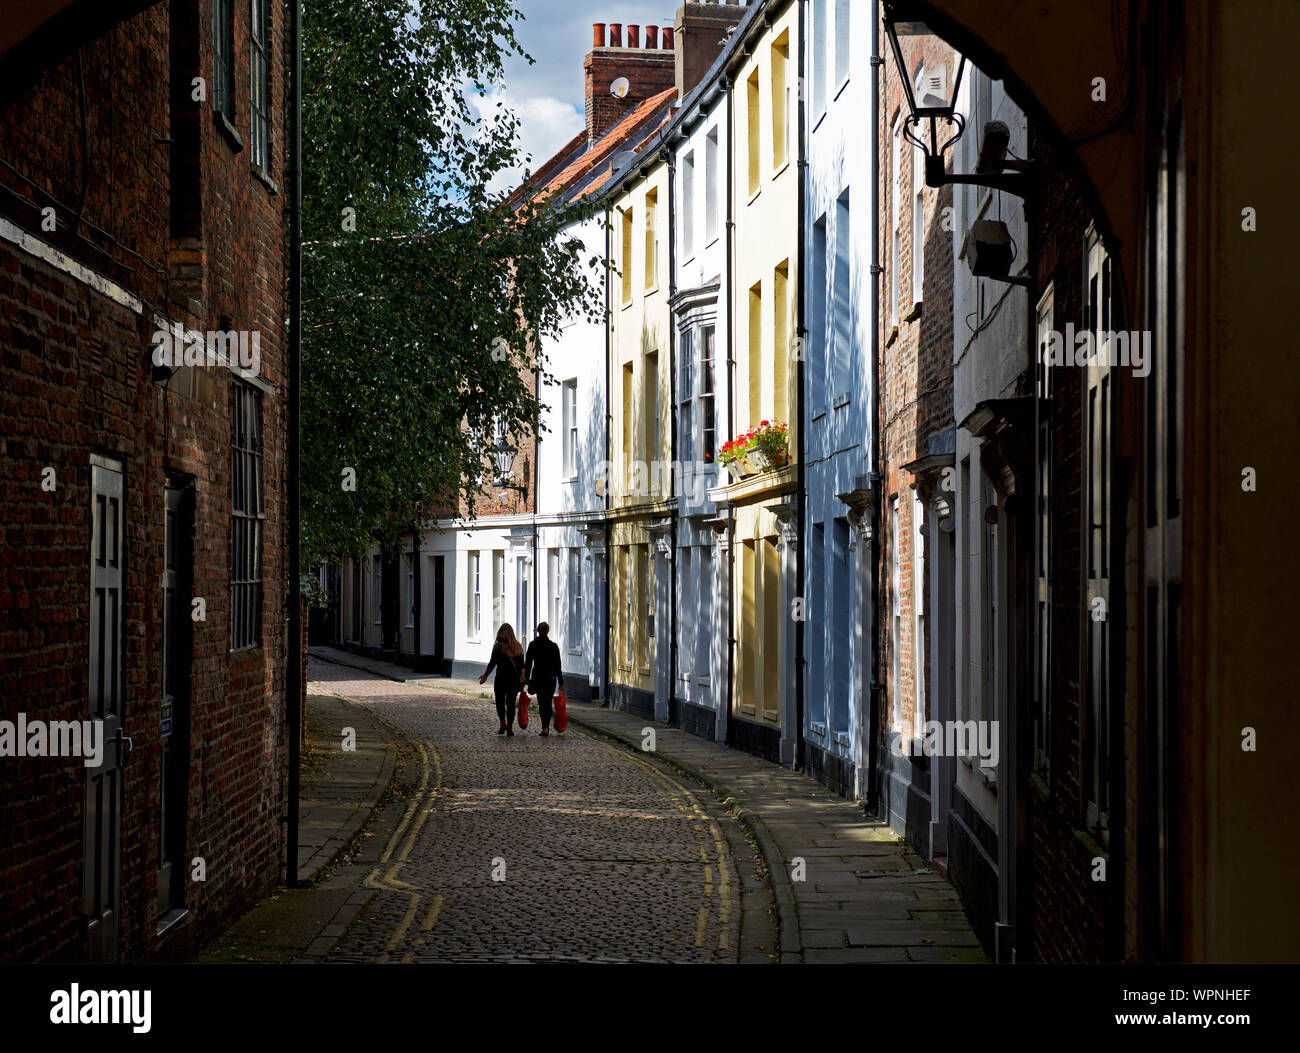 two-young-women-walking-past-the-georgian-houses-on-cobbled-prince-street-hull-east-yorkshire-england-uk-WPNHEF.jpg